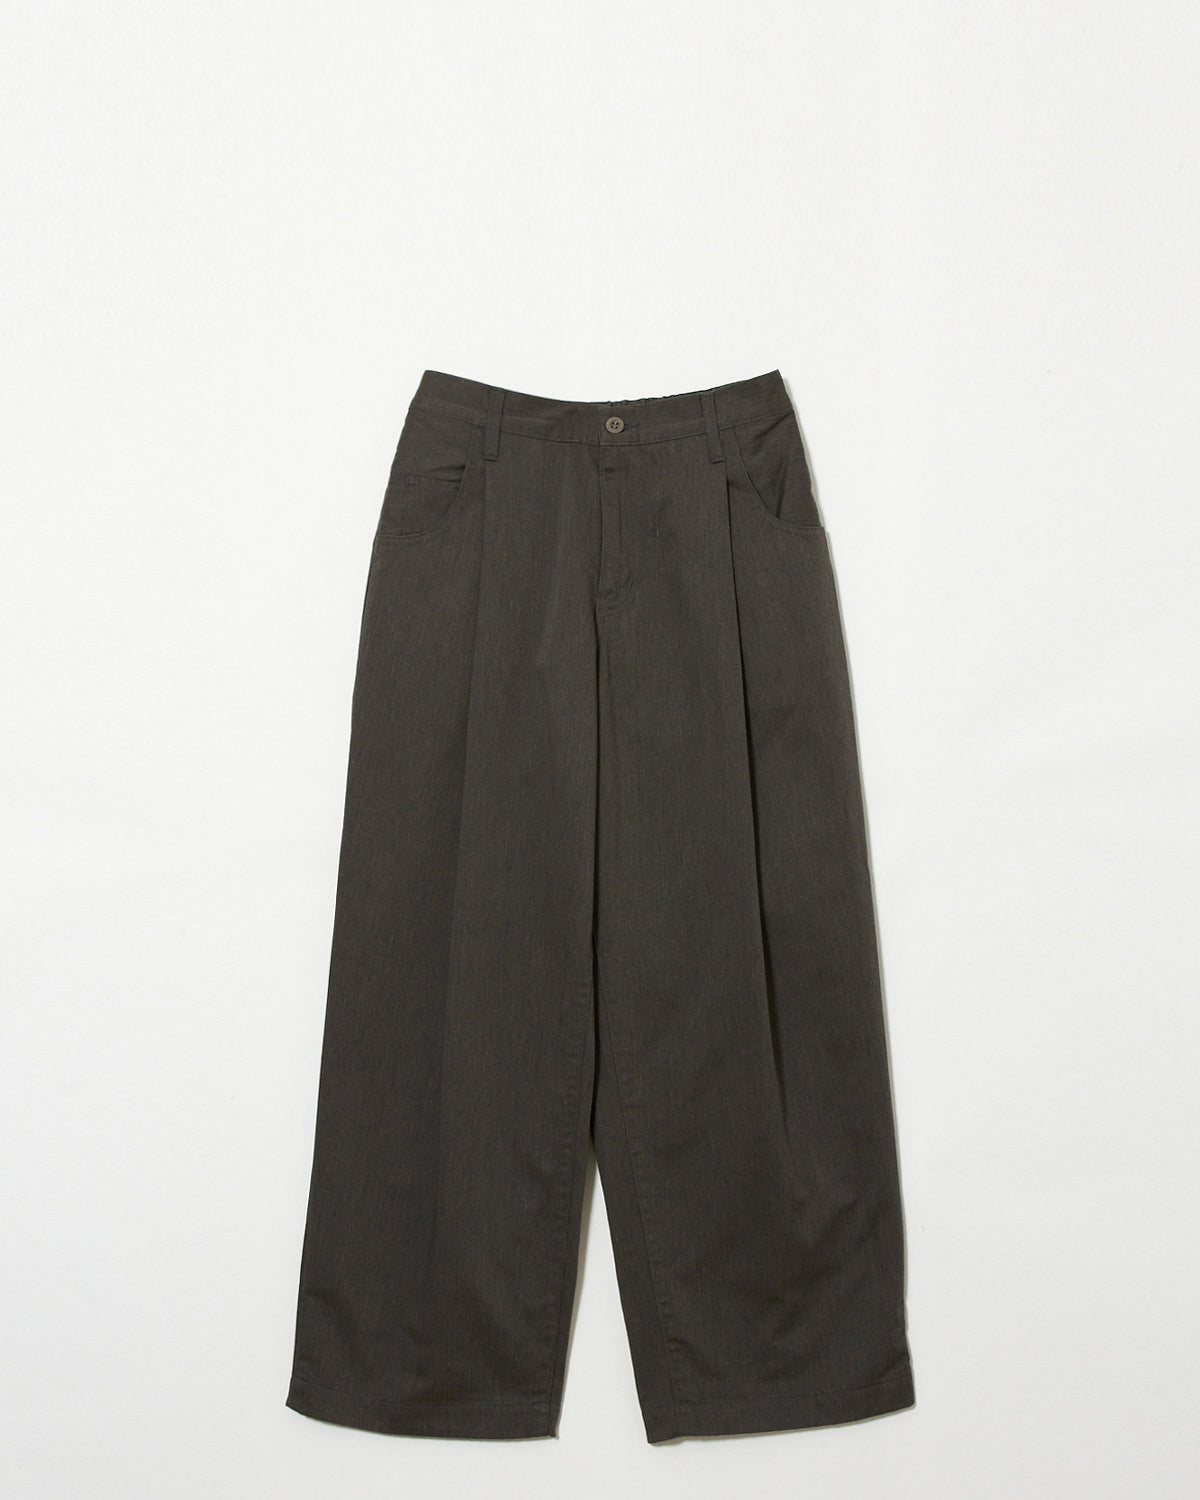 INFLUENCE / Tuck Wide Pants (gray)